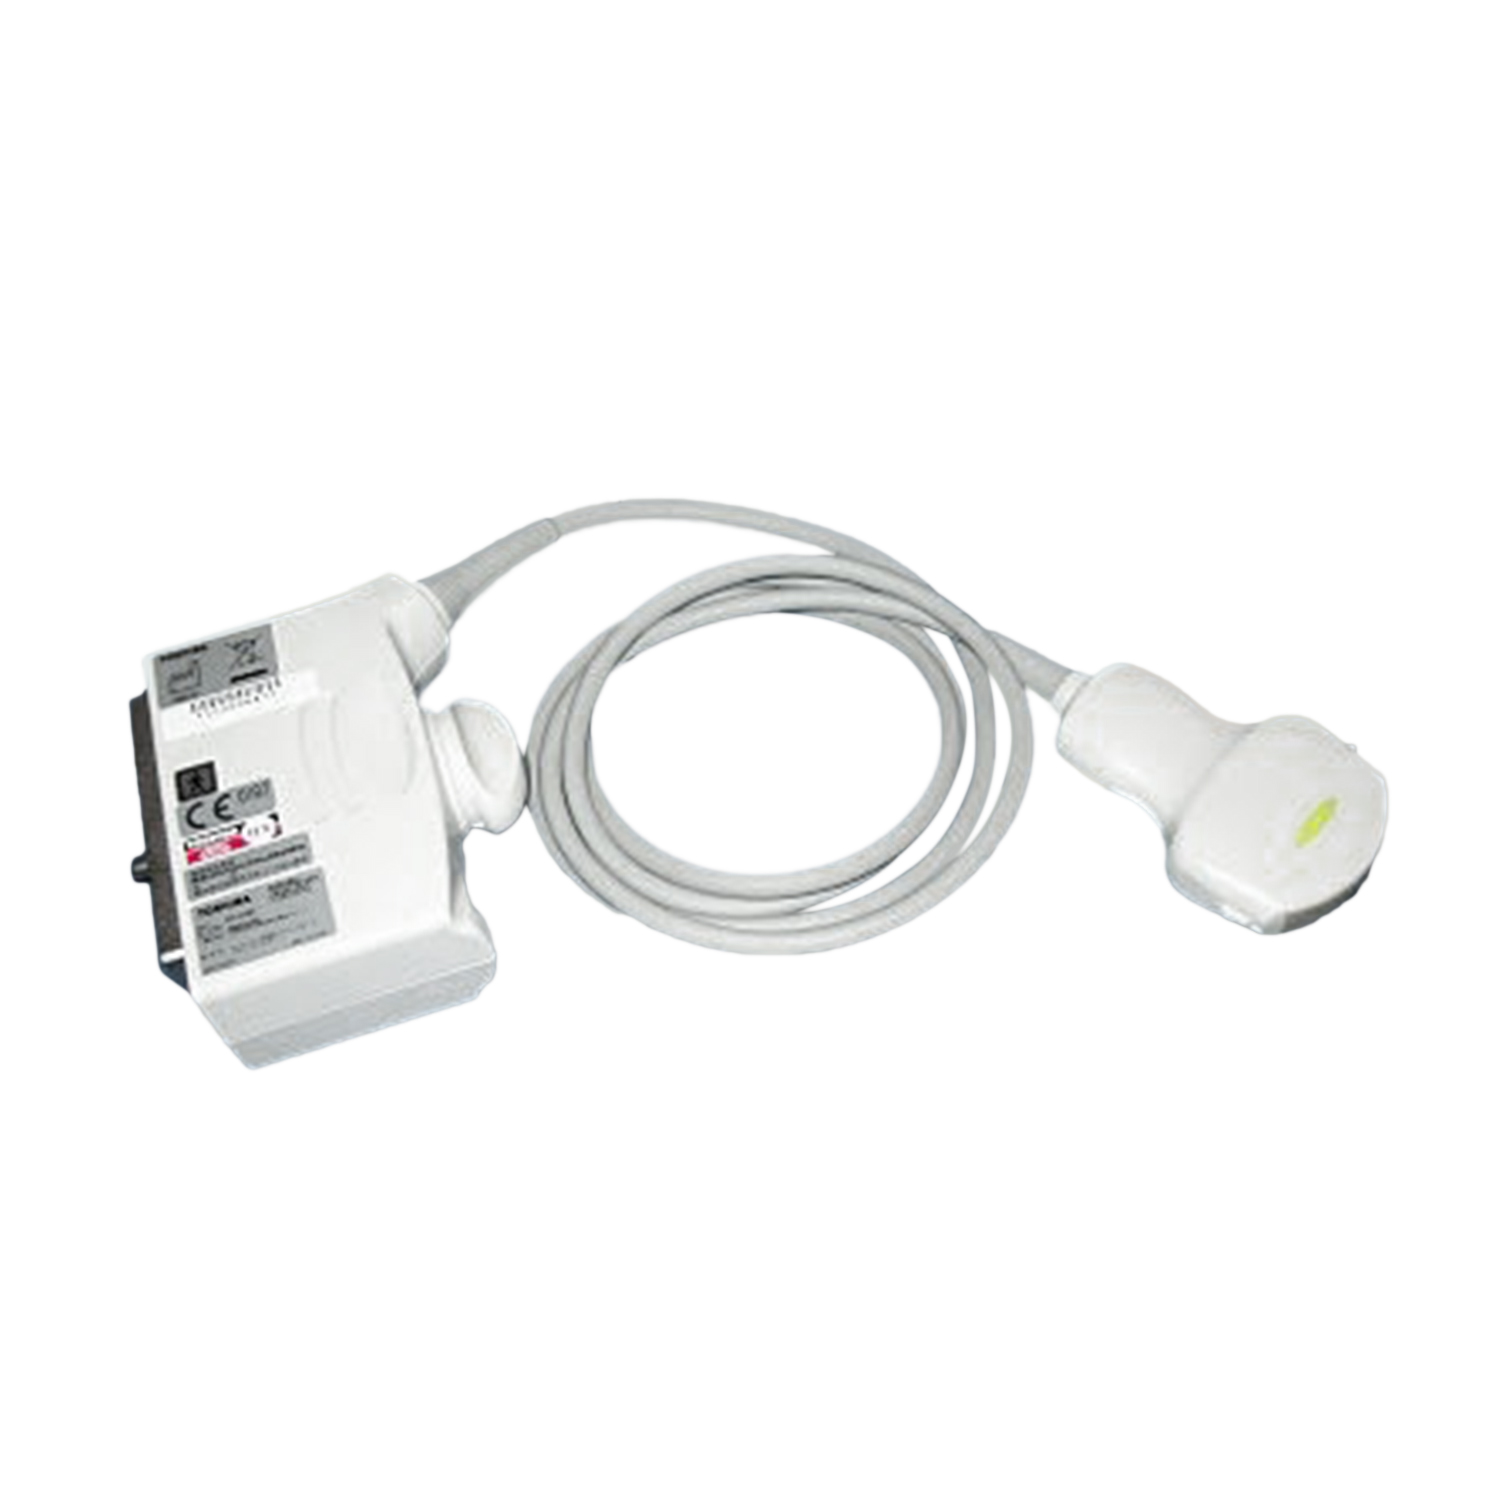 Toshiba PVT-375BT Ultrasound Probe